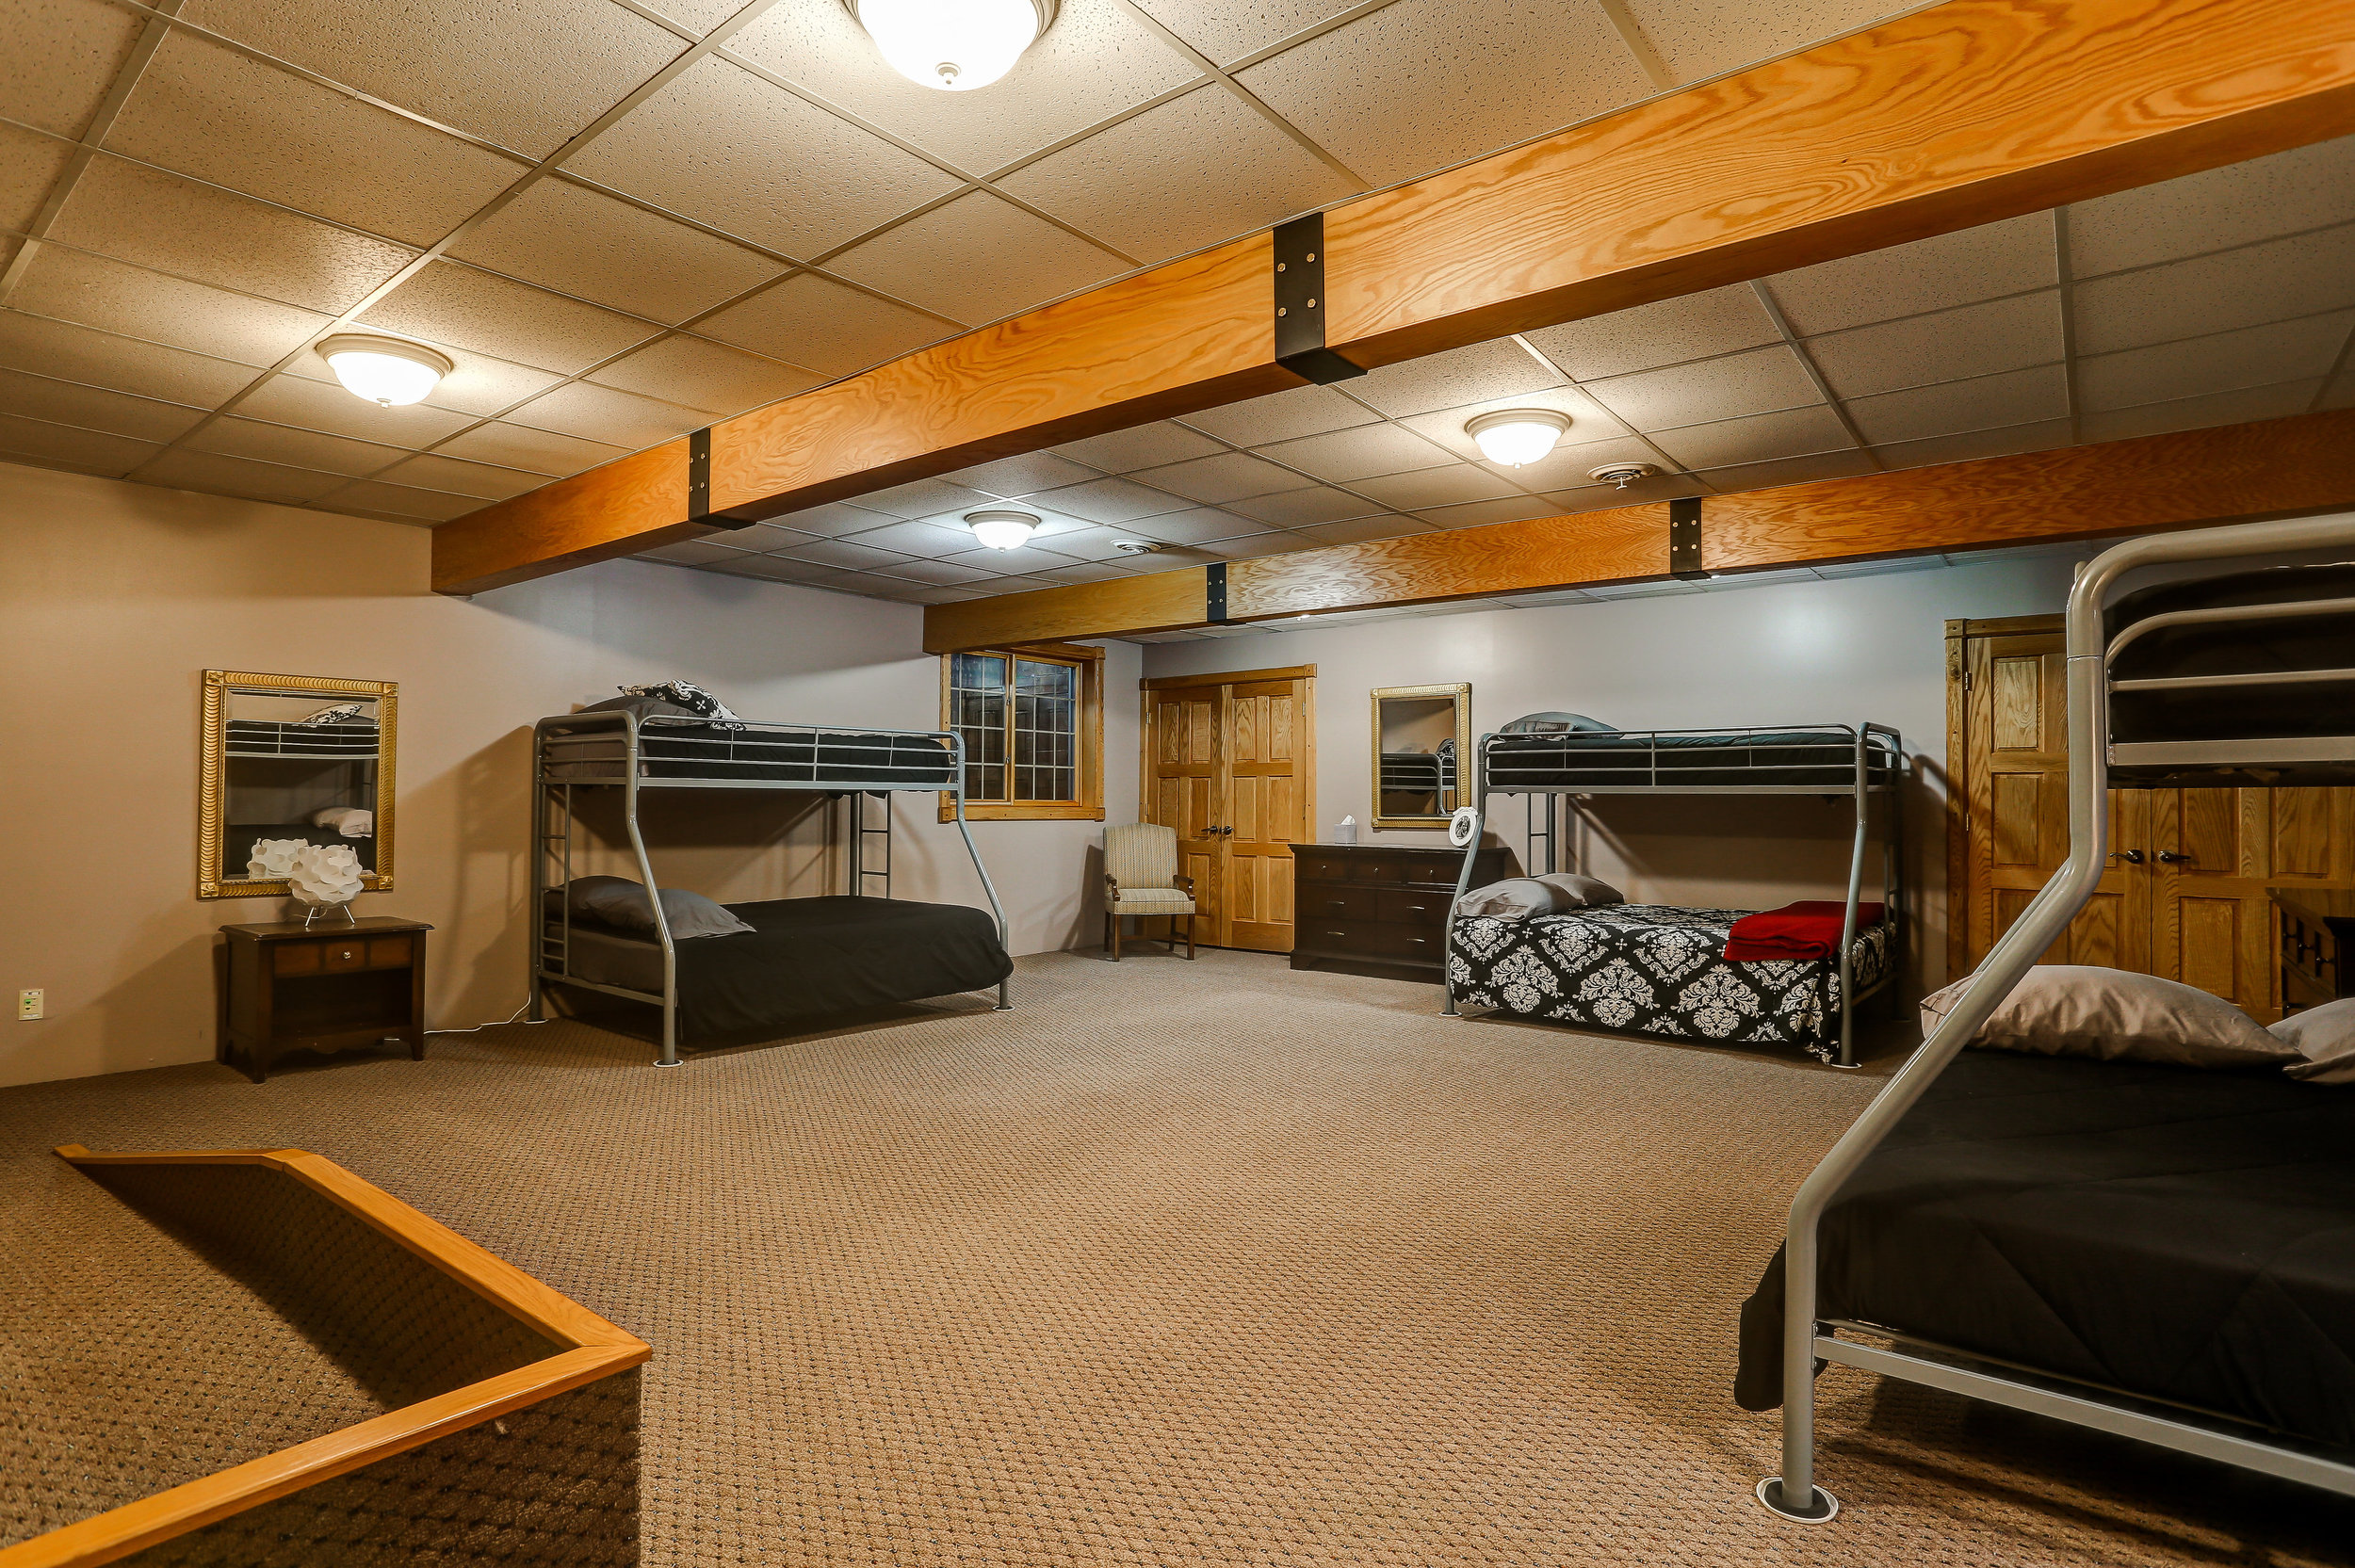 Bunk Room - Downstairs | Full bed bottom bunks and shared bathroom in hallway